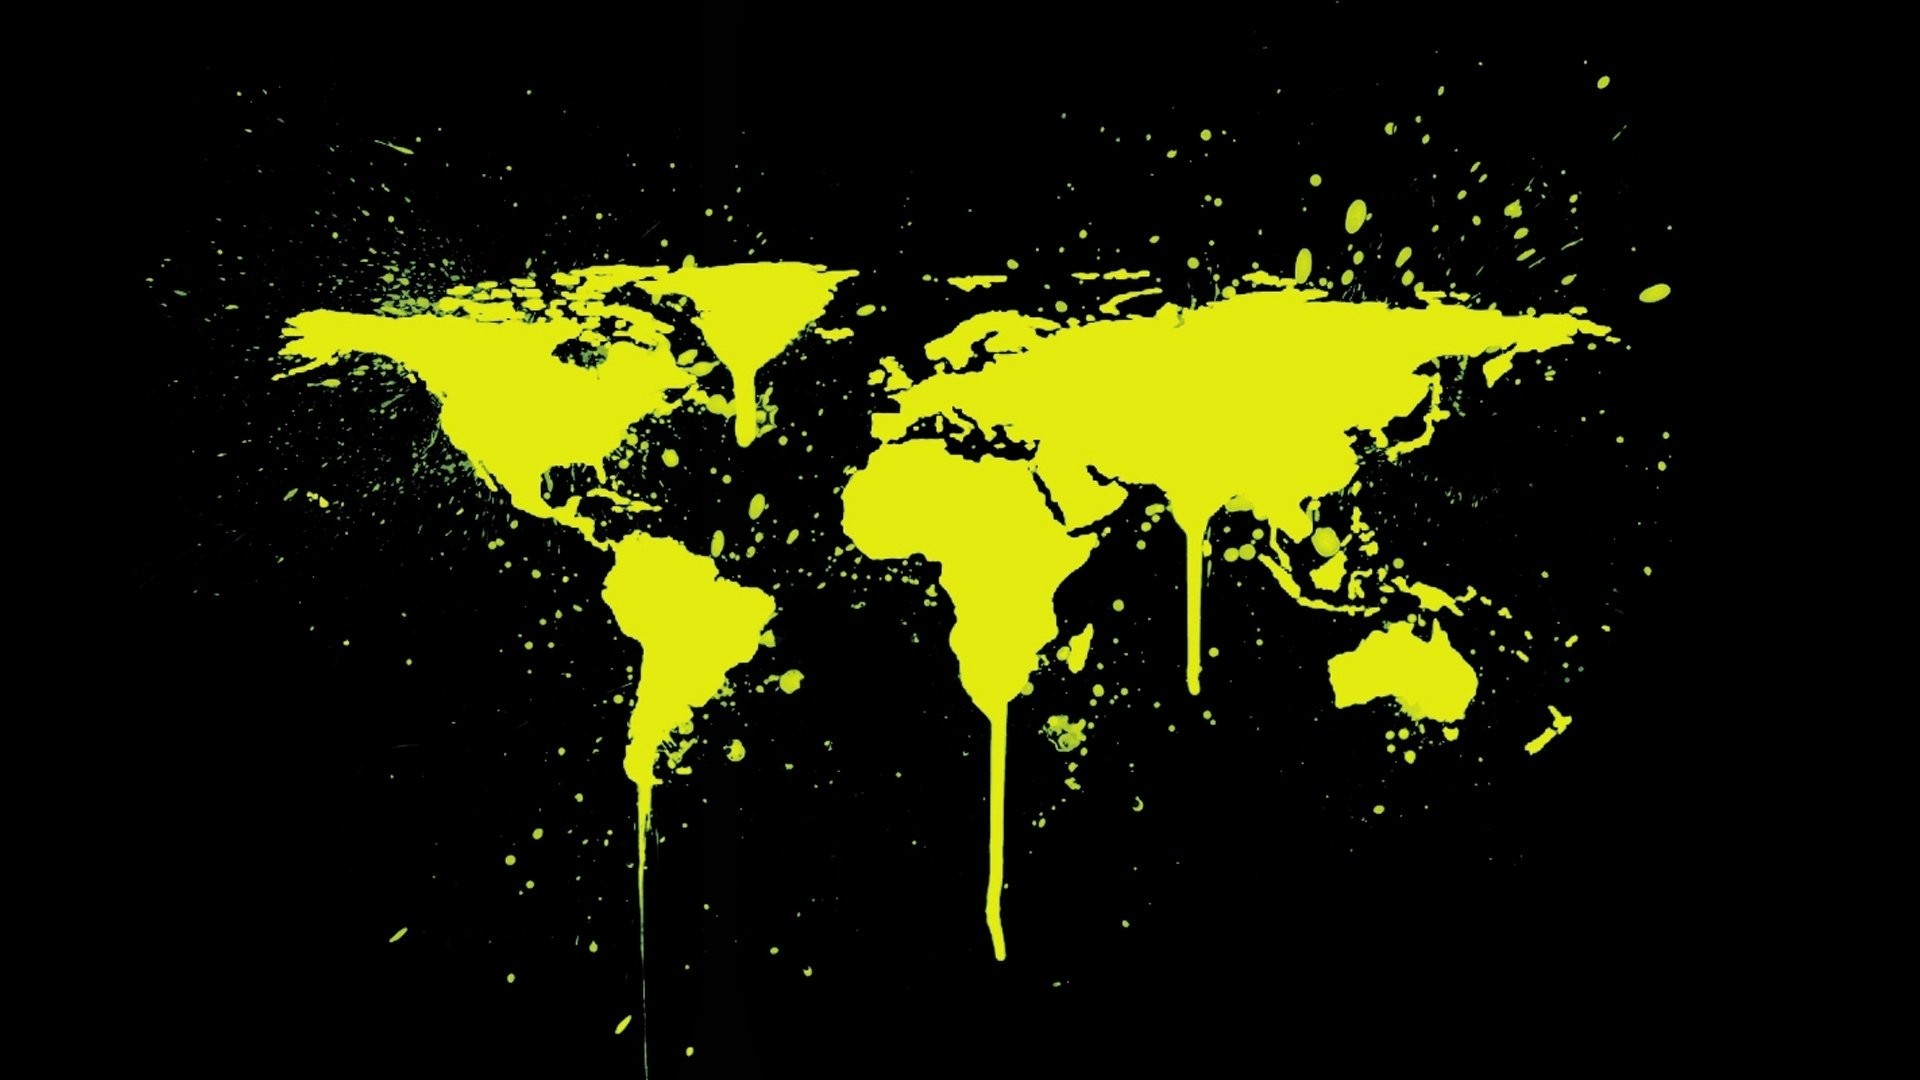 World map desktop wallpapers 62 background pictures 1920x1080 1920x1080 world map r wall murals wallpaper rebel walls 19201080 gumiabroncs Images